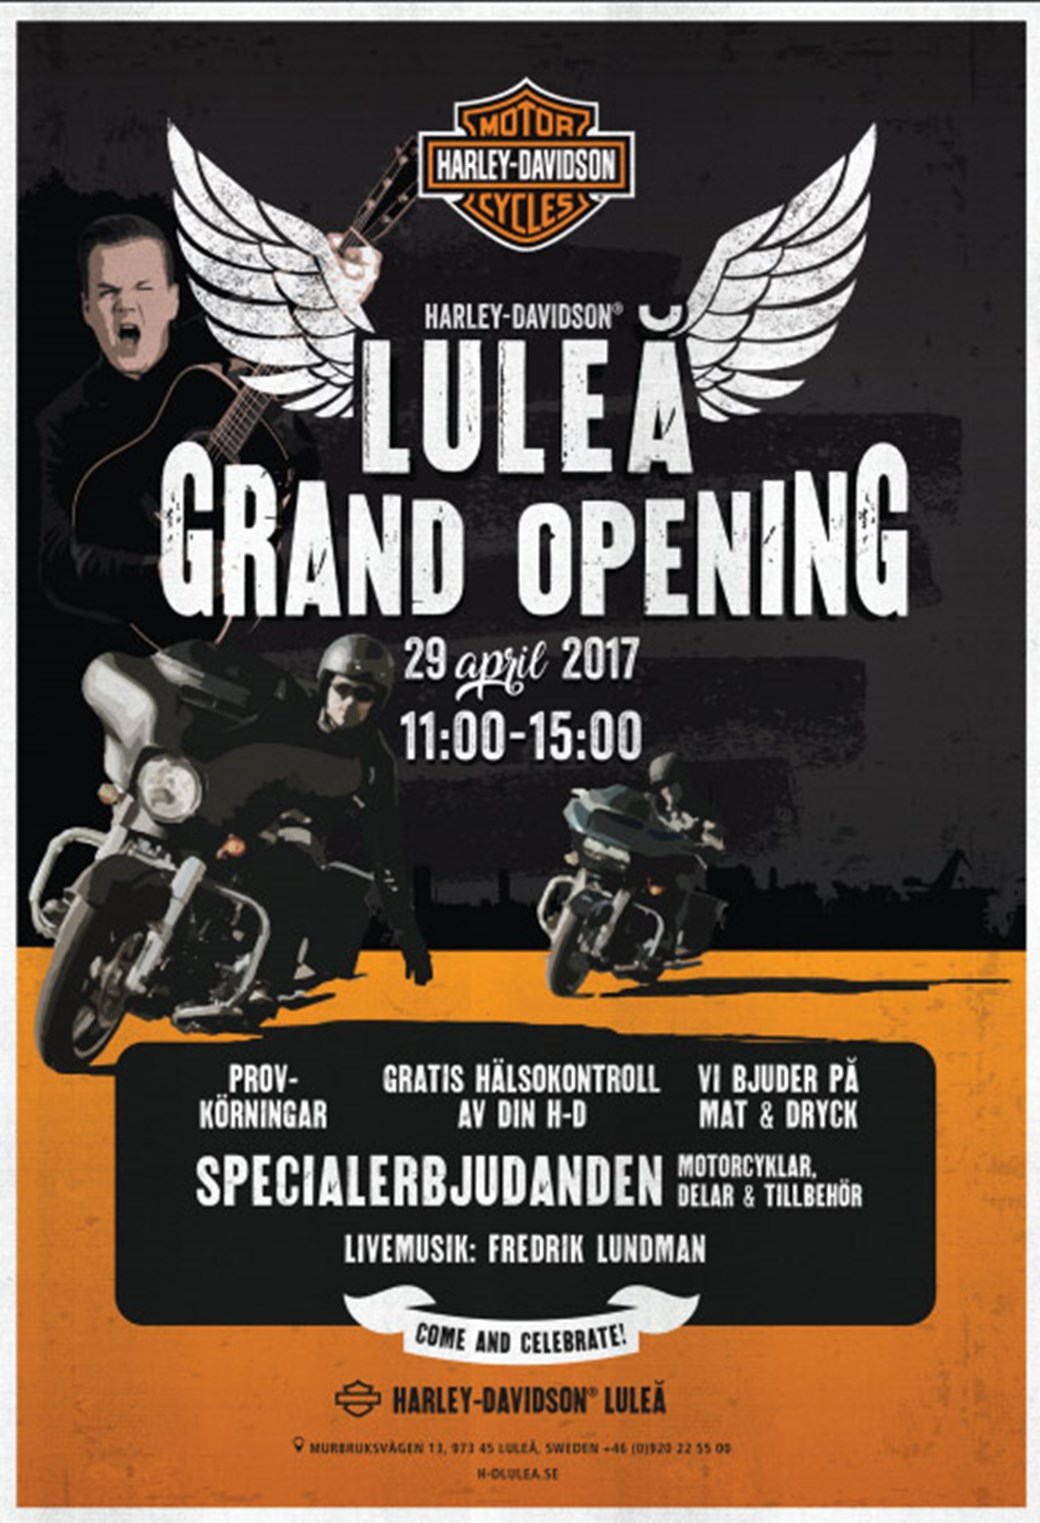 Harley Davidson Luleå Grand Opening 29 april